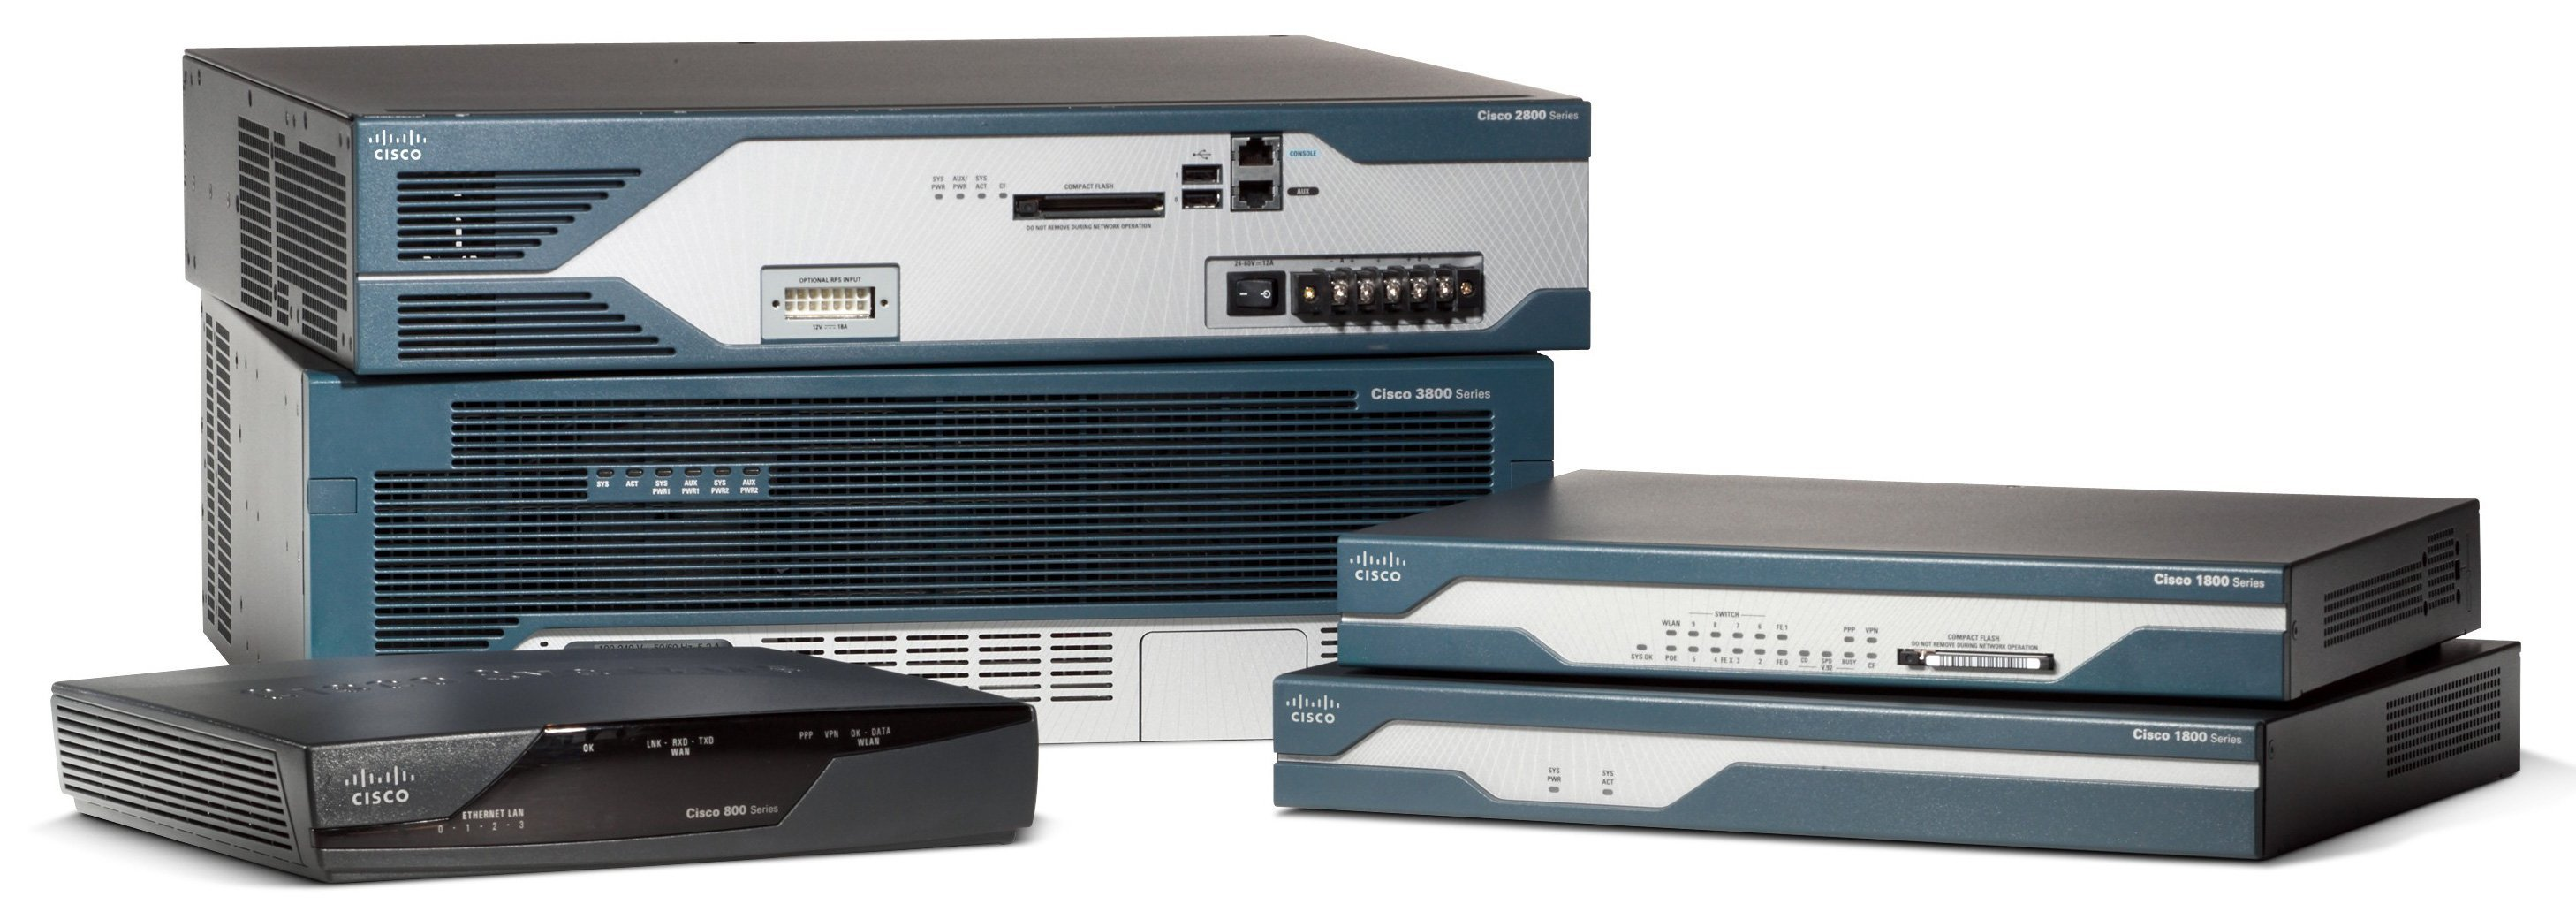 We buy Cisco switches and routers in Bristol